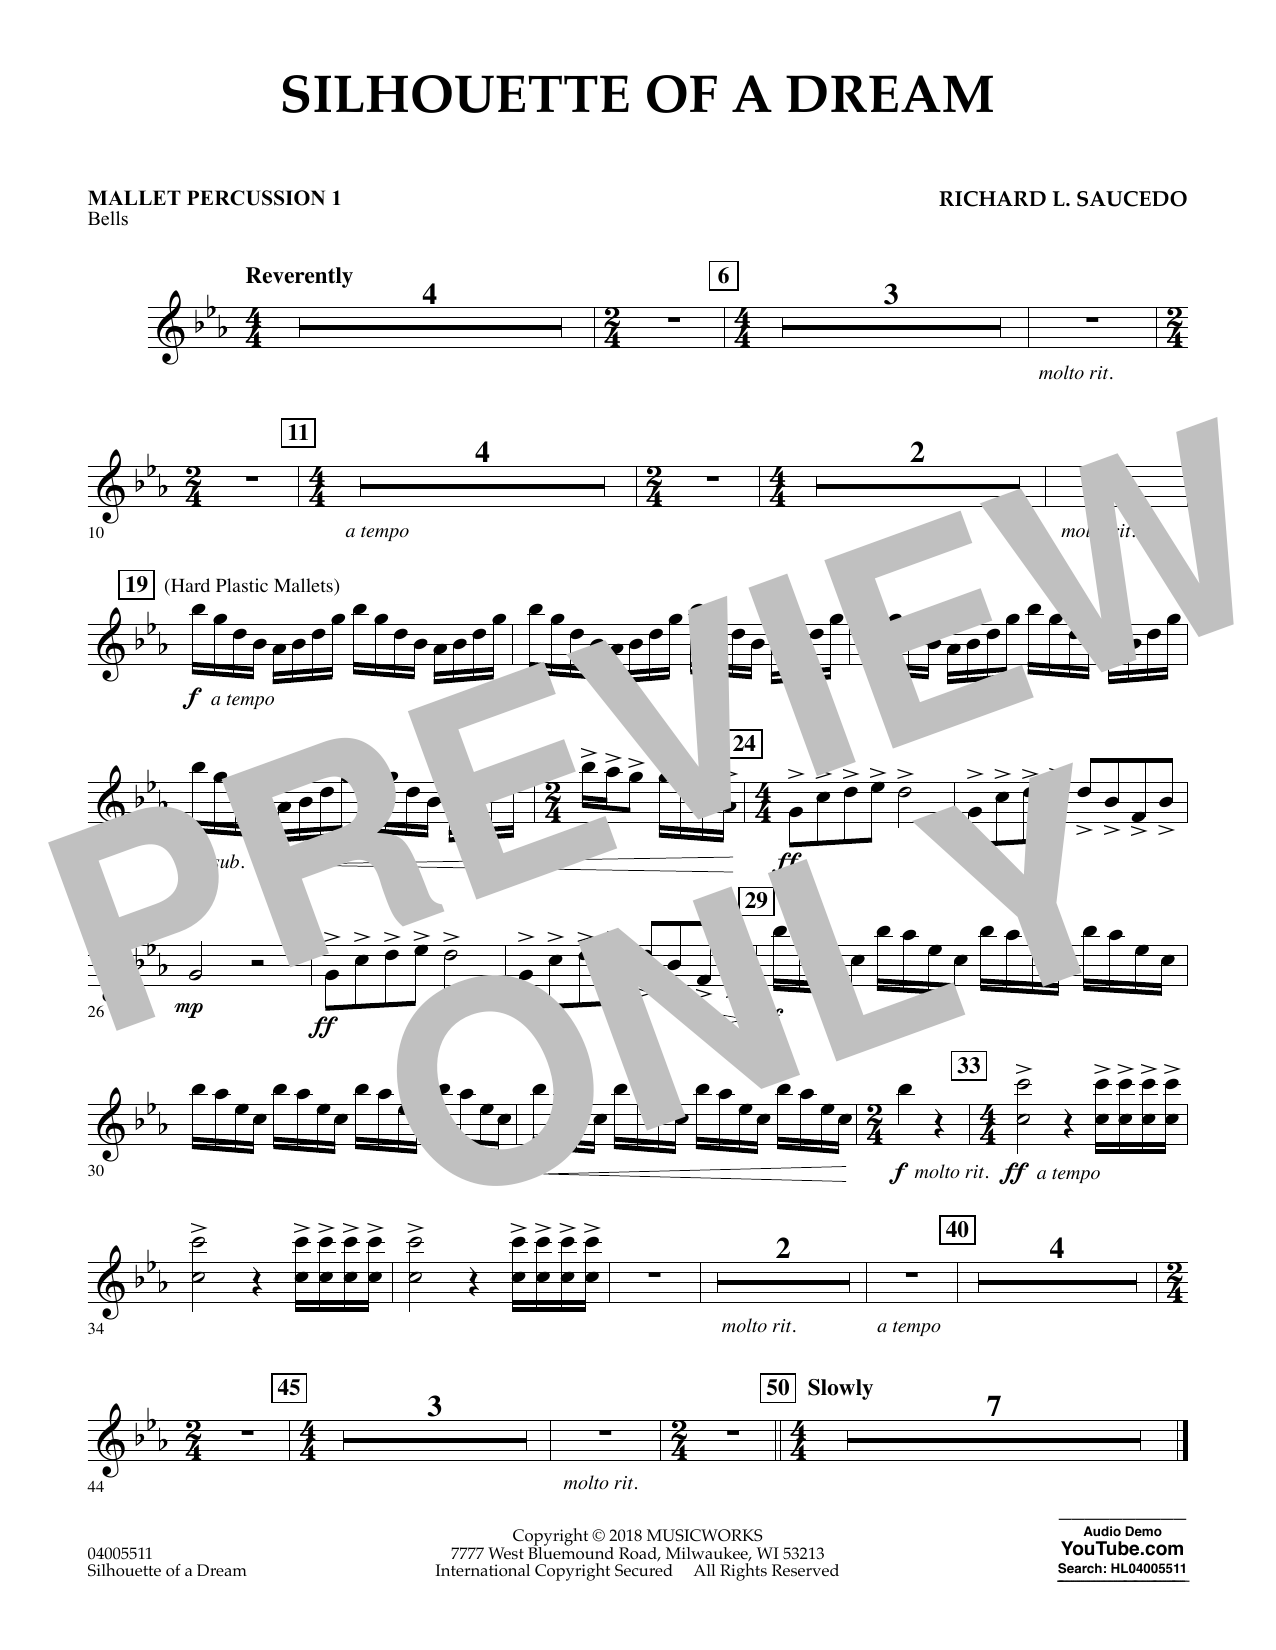 Silhouette of a Dream - Mallet Percussion 1 (Concert Band)